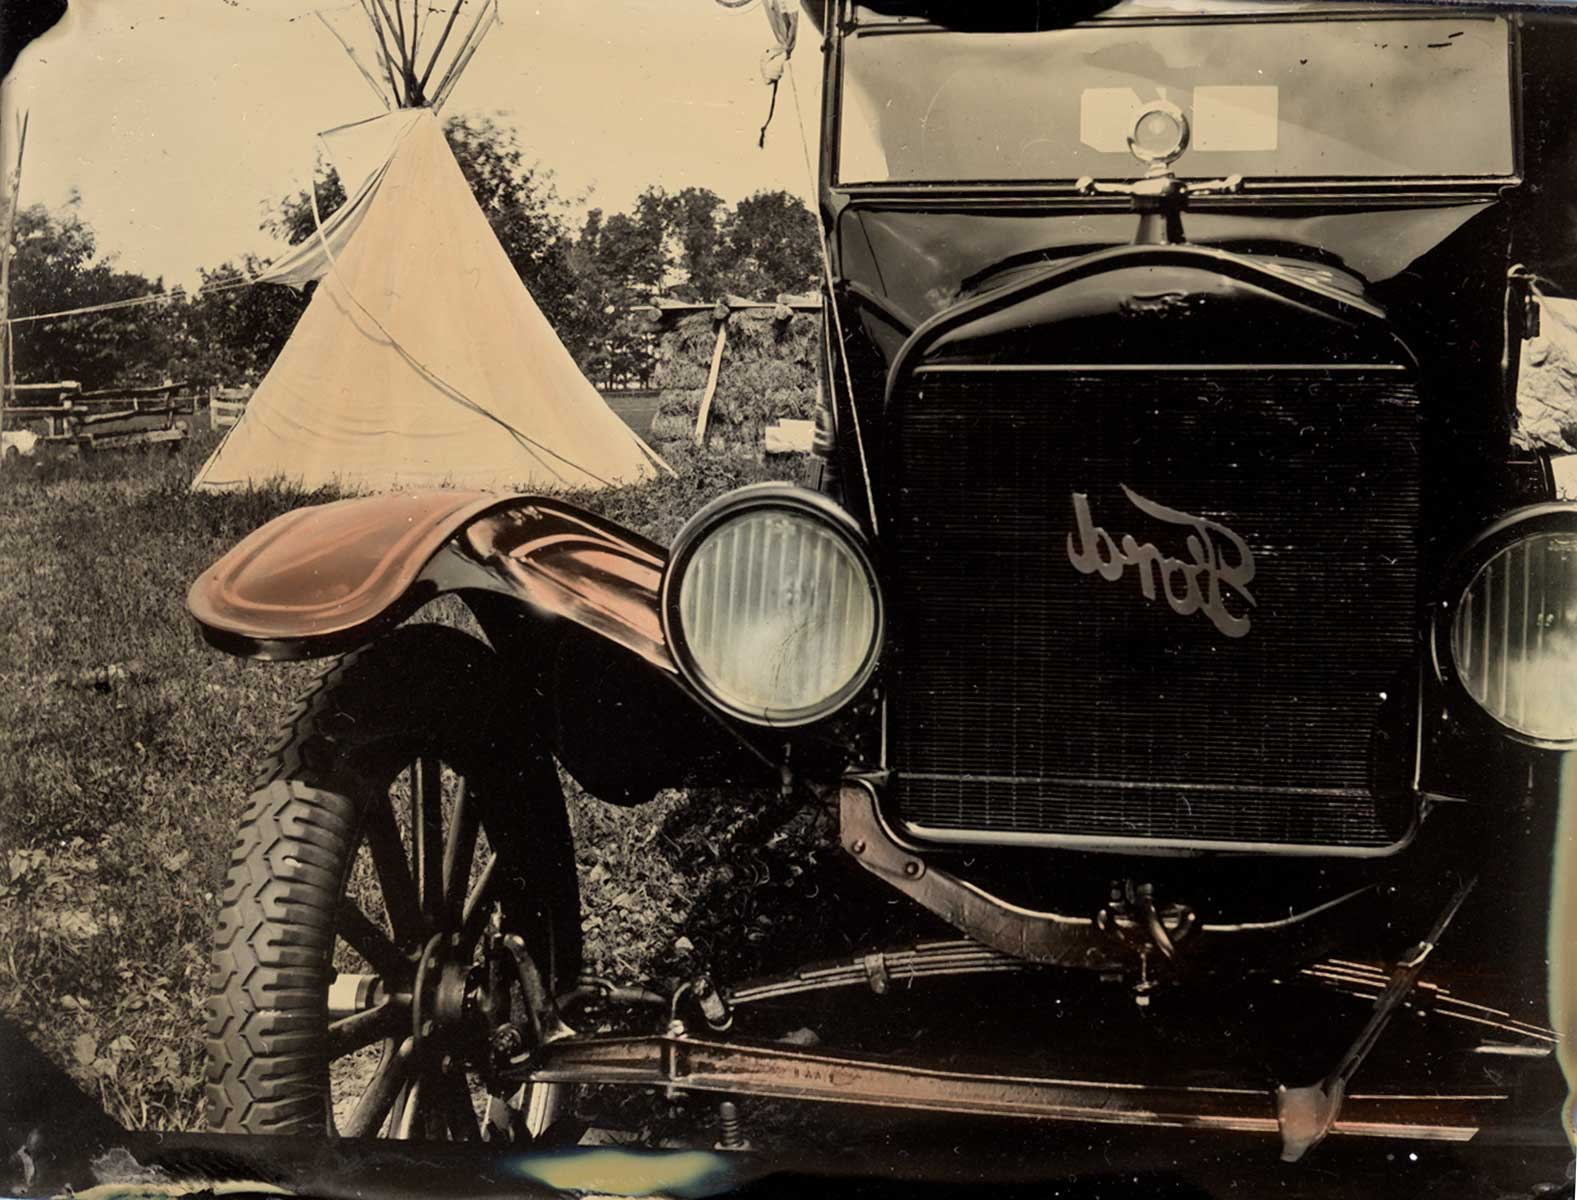 Glens Falls Art®. A Mobile Tintype Studio located between Lake George and Saratoga, NY.